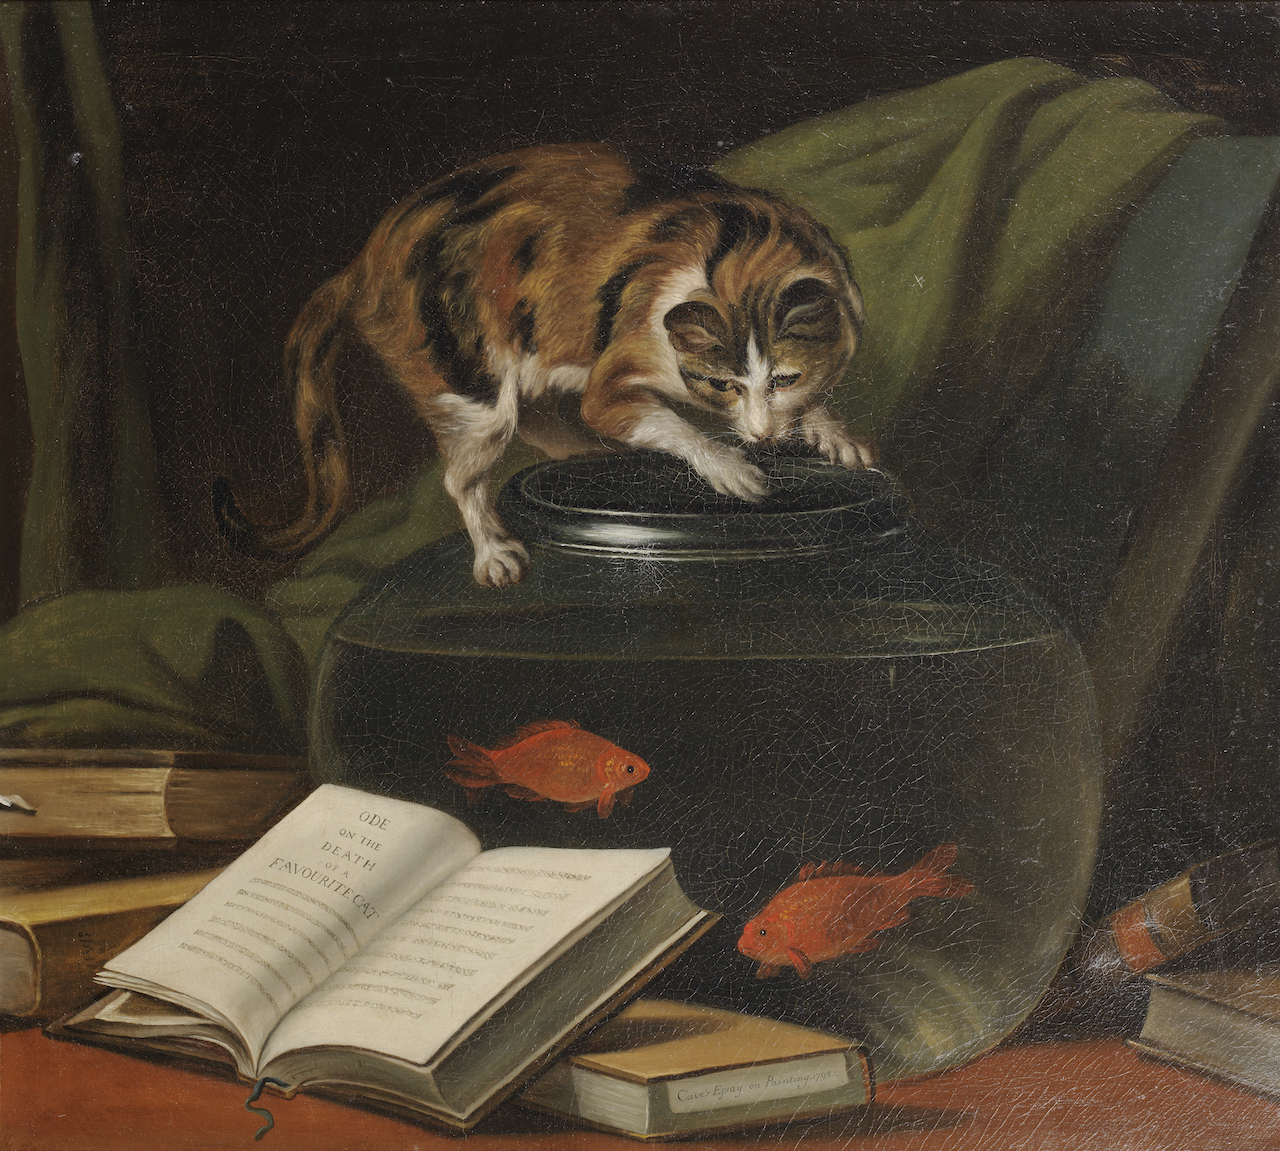 """Attributed to Martin Ferdinand Quadal, """"Ode on the Death of a Favourite Cat Drowned in a Tub of Goldfishes"""" (1736-1811), oil on canvas (courtesy Bonhams)"""